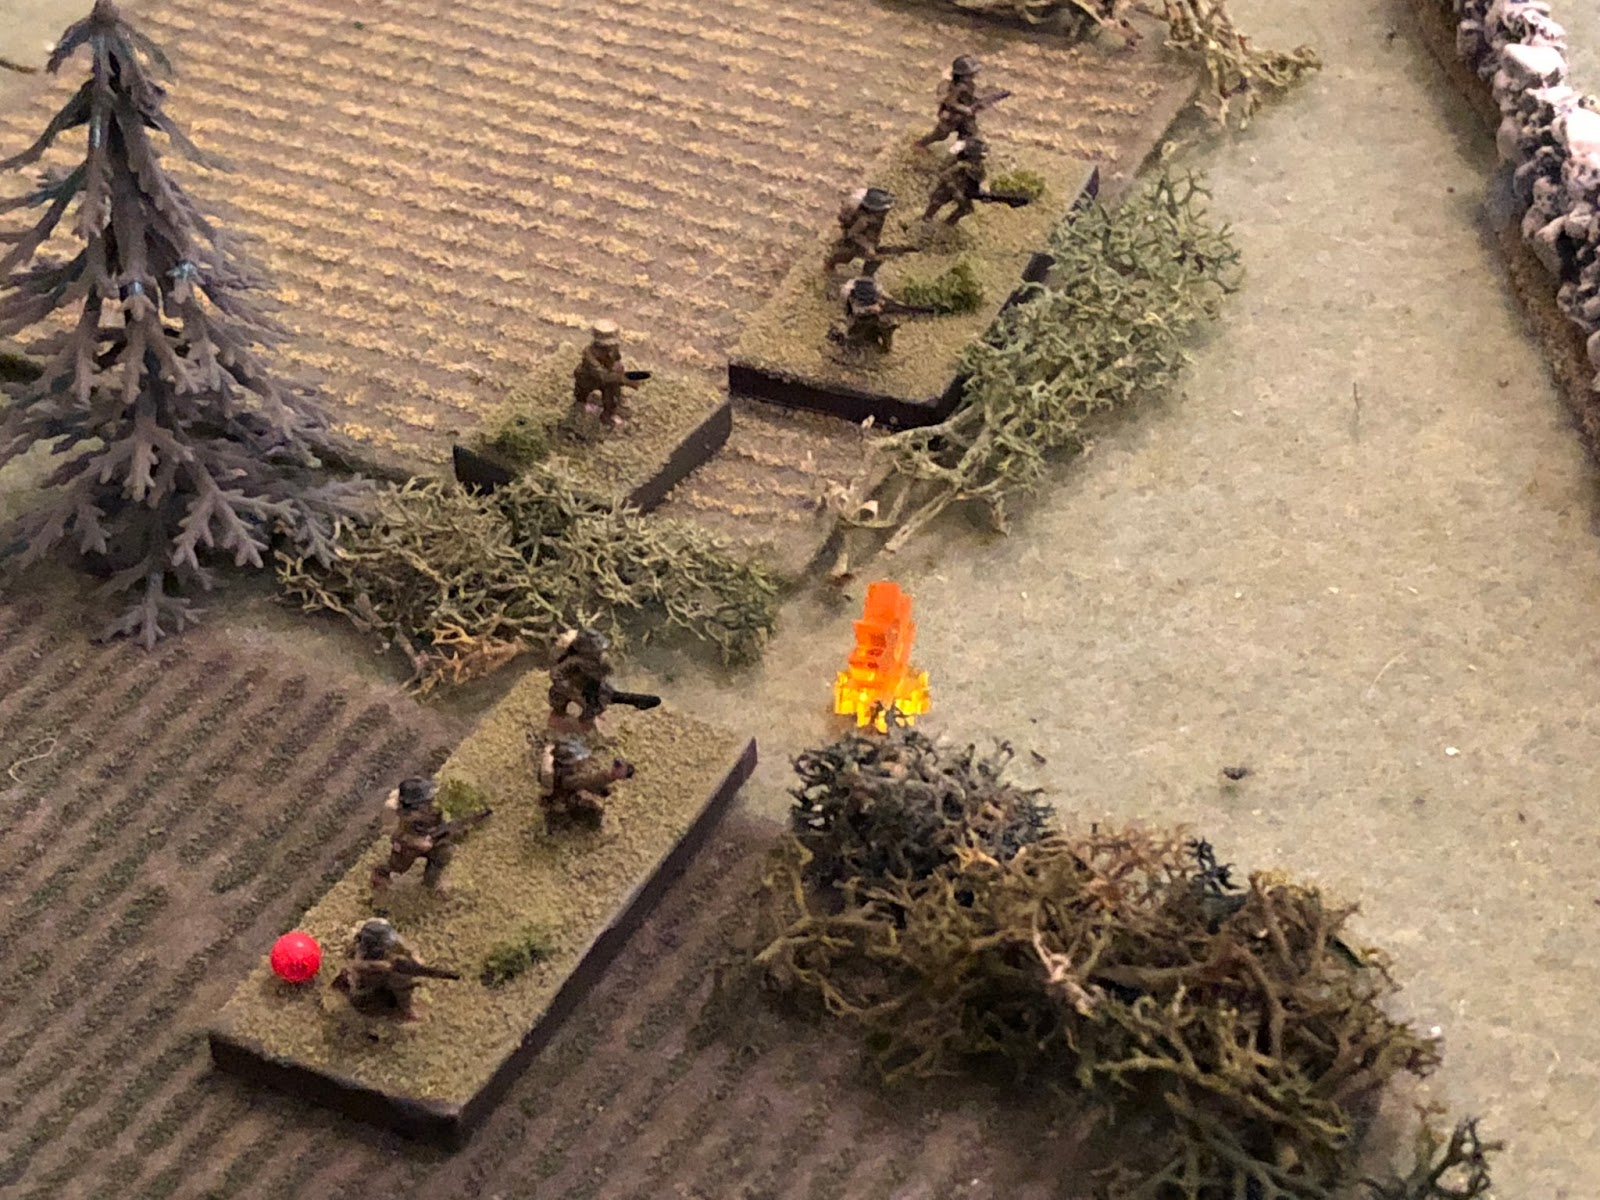 And SSgt Sachs' fire manages to suppress one of the enemy squads.